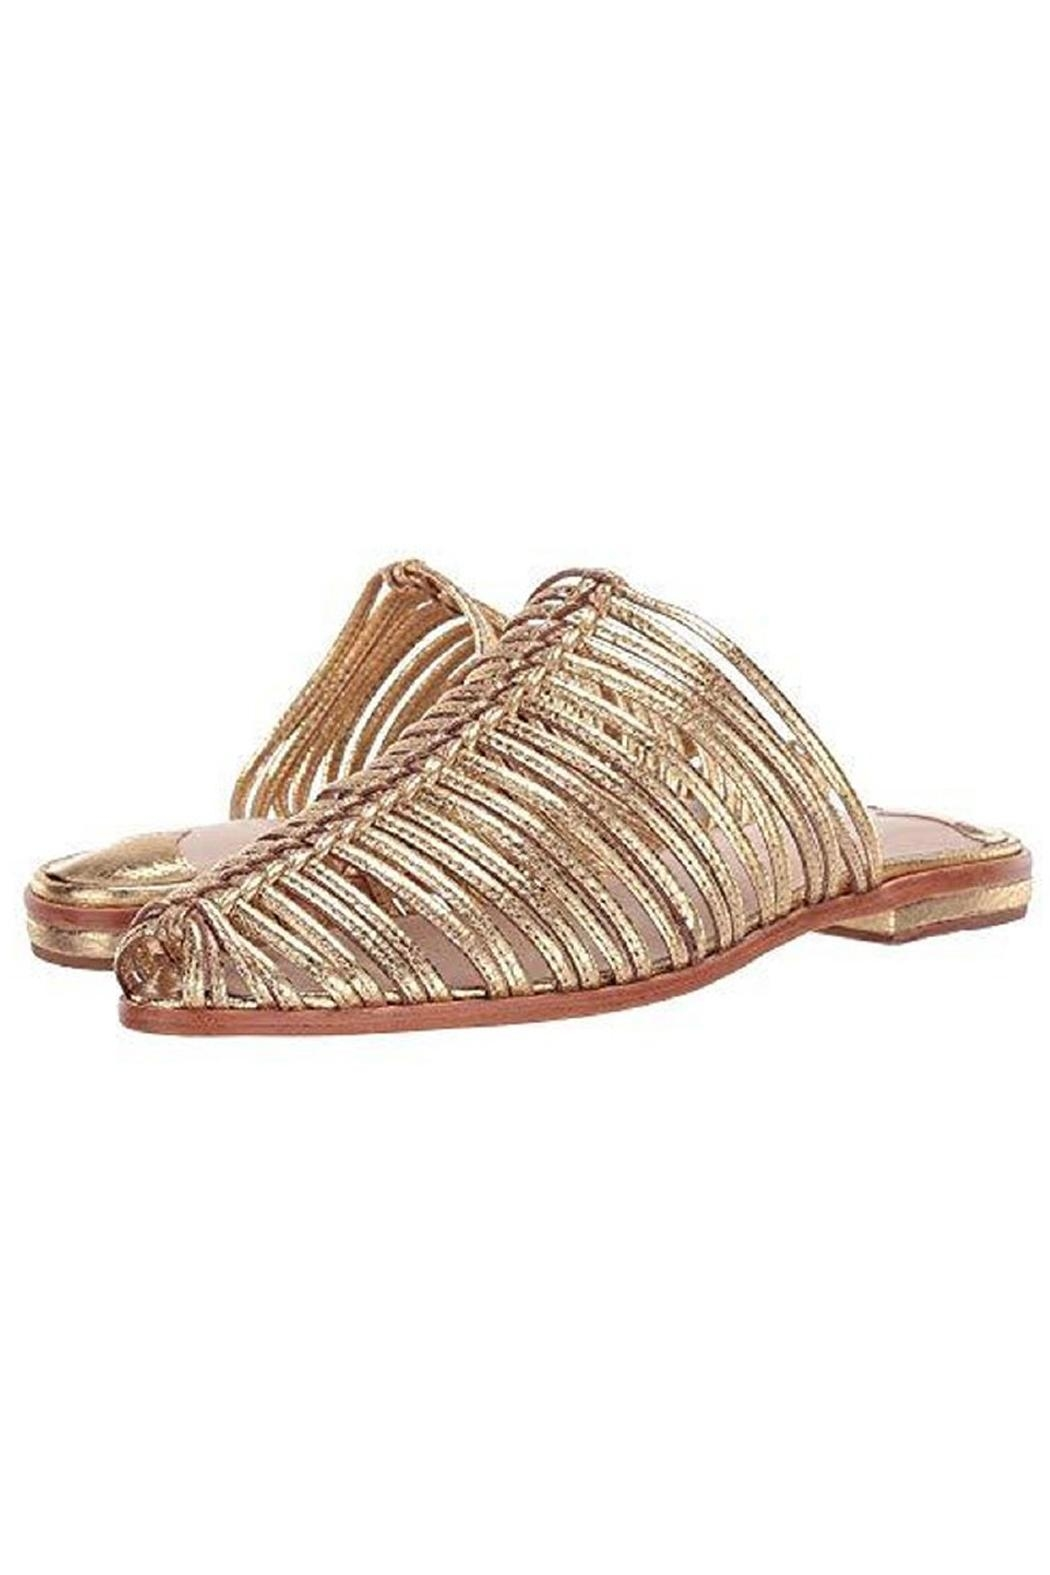 Cecelia New York Gold Metallic Mules - Front Full Image